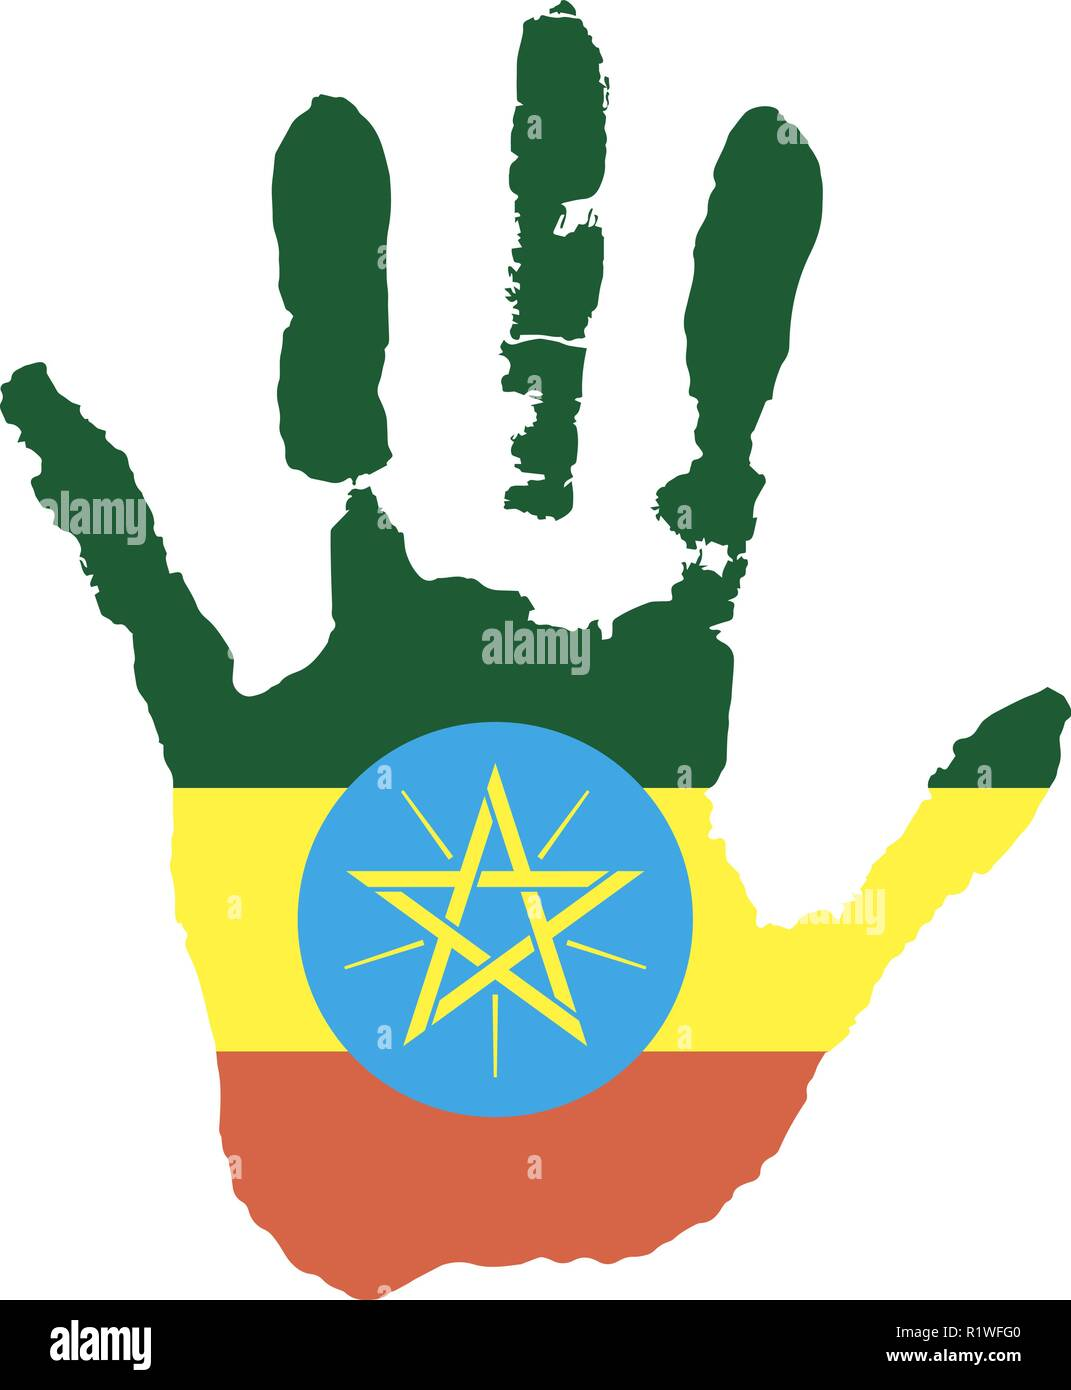 green, yellow, red color of the flag. vector handprint in the form of the star flag of Ethiopia. - Stock Vector